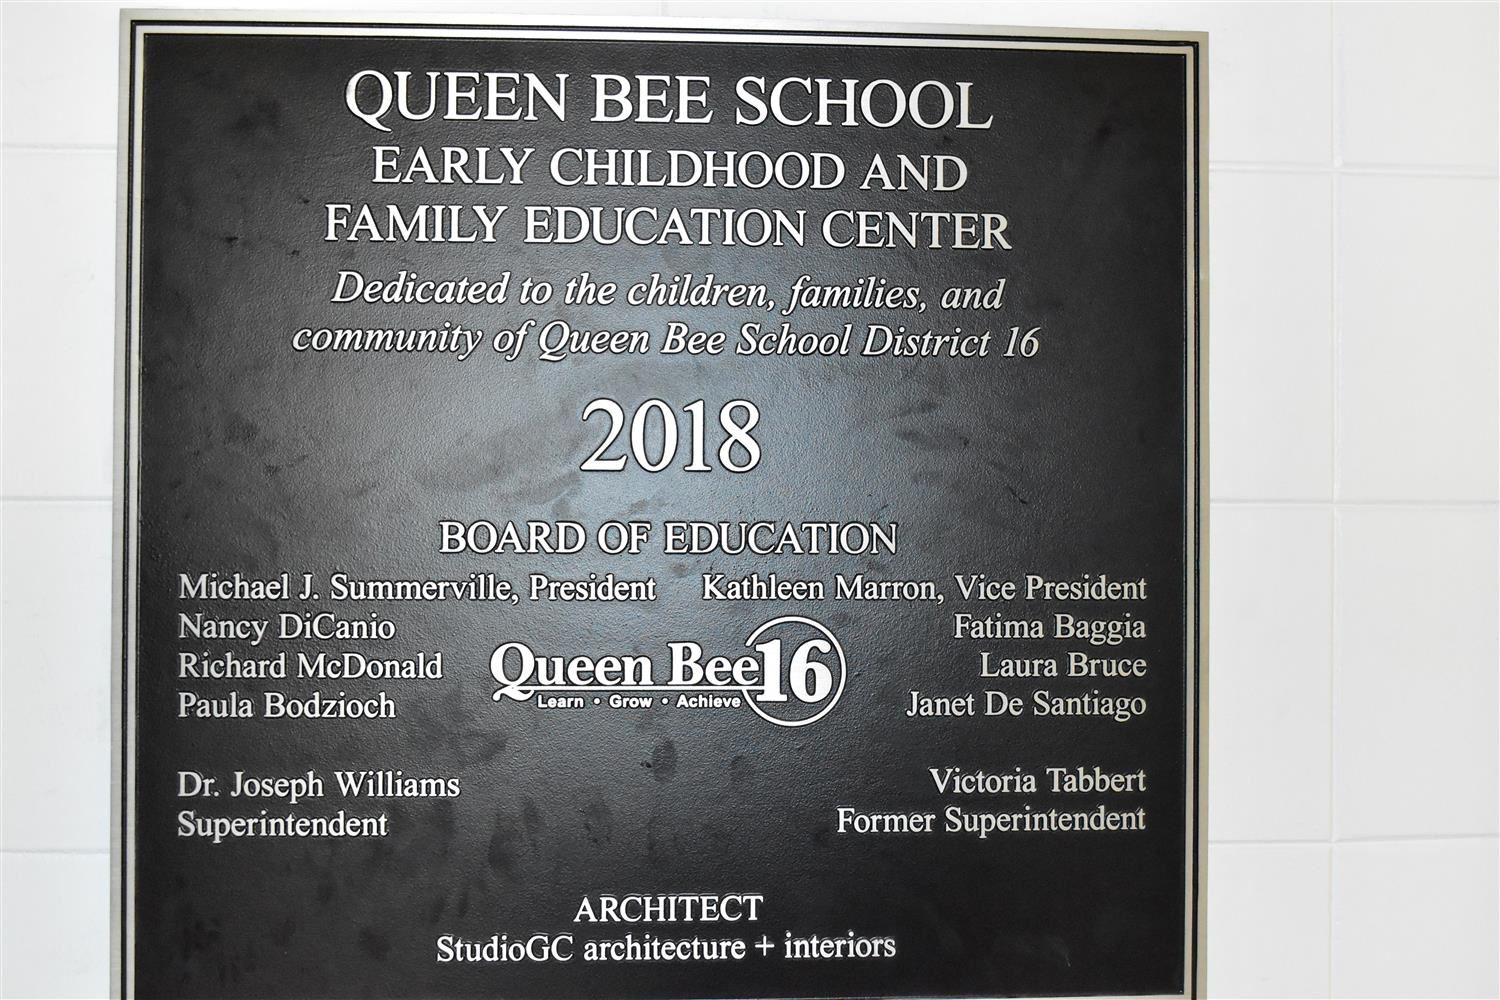 Queen Bee Early Childhood Center / Homepage